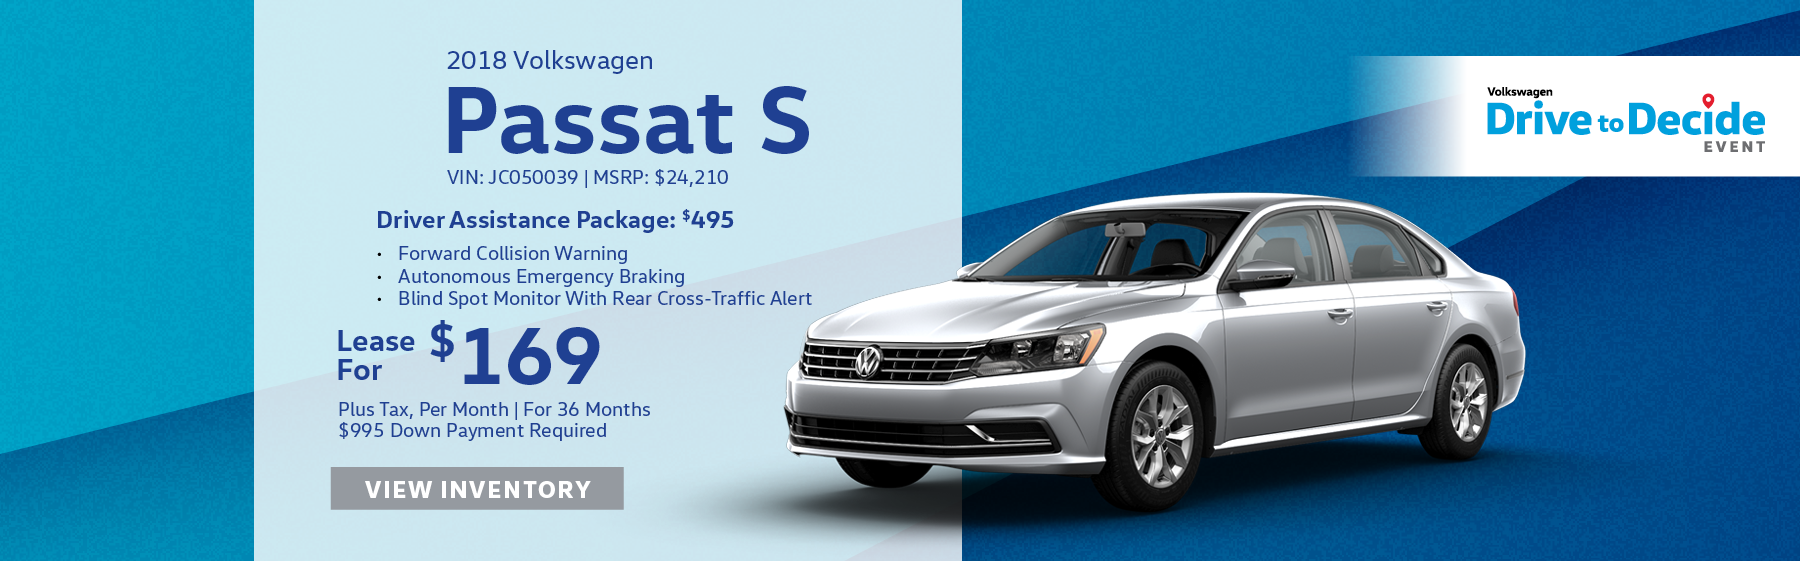 Lease the 2018 Volkswagen Passat S for $169 plus tax for 36 months. $995 Down payment required. $495 Driver assistance package includes forward collision warning, autonomous emergency braking, and blind spot monitor with rear cross-traffic alert.